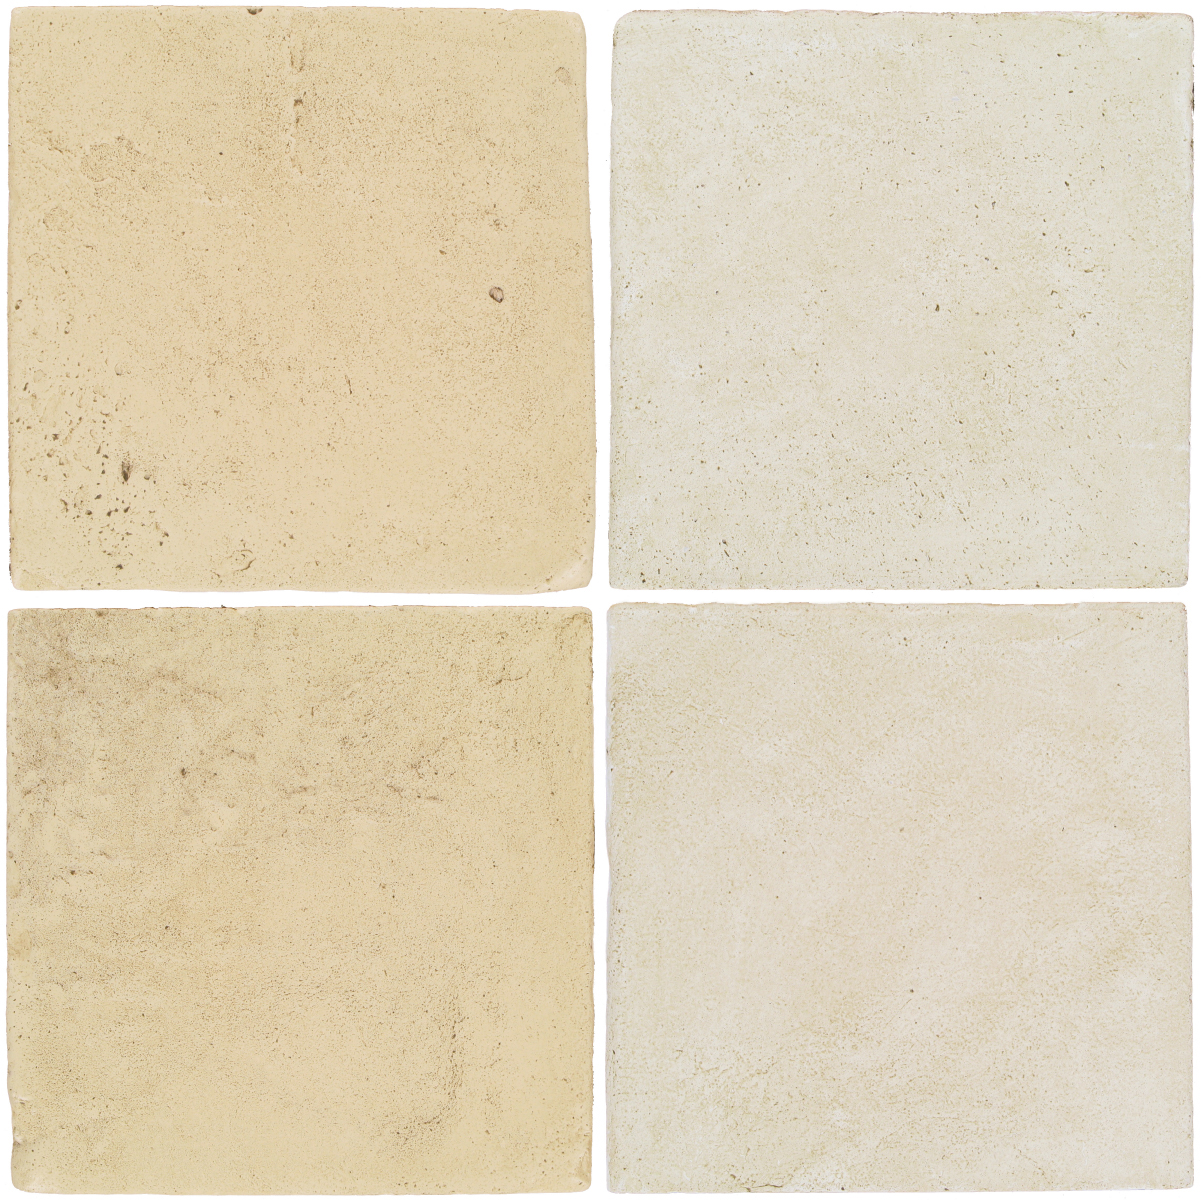 Pedralbes Antique Terracotta  2 Color Combinations  VTG-PGPW Pergamino White + OHS-PGAW Antique White